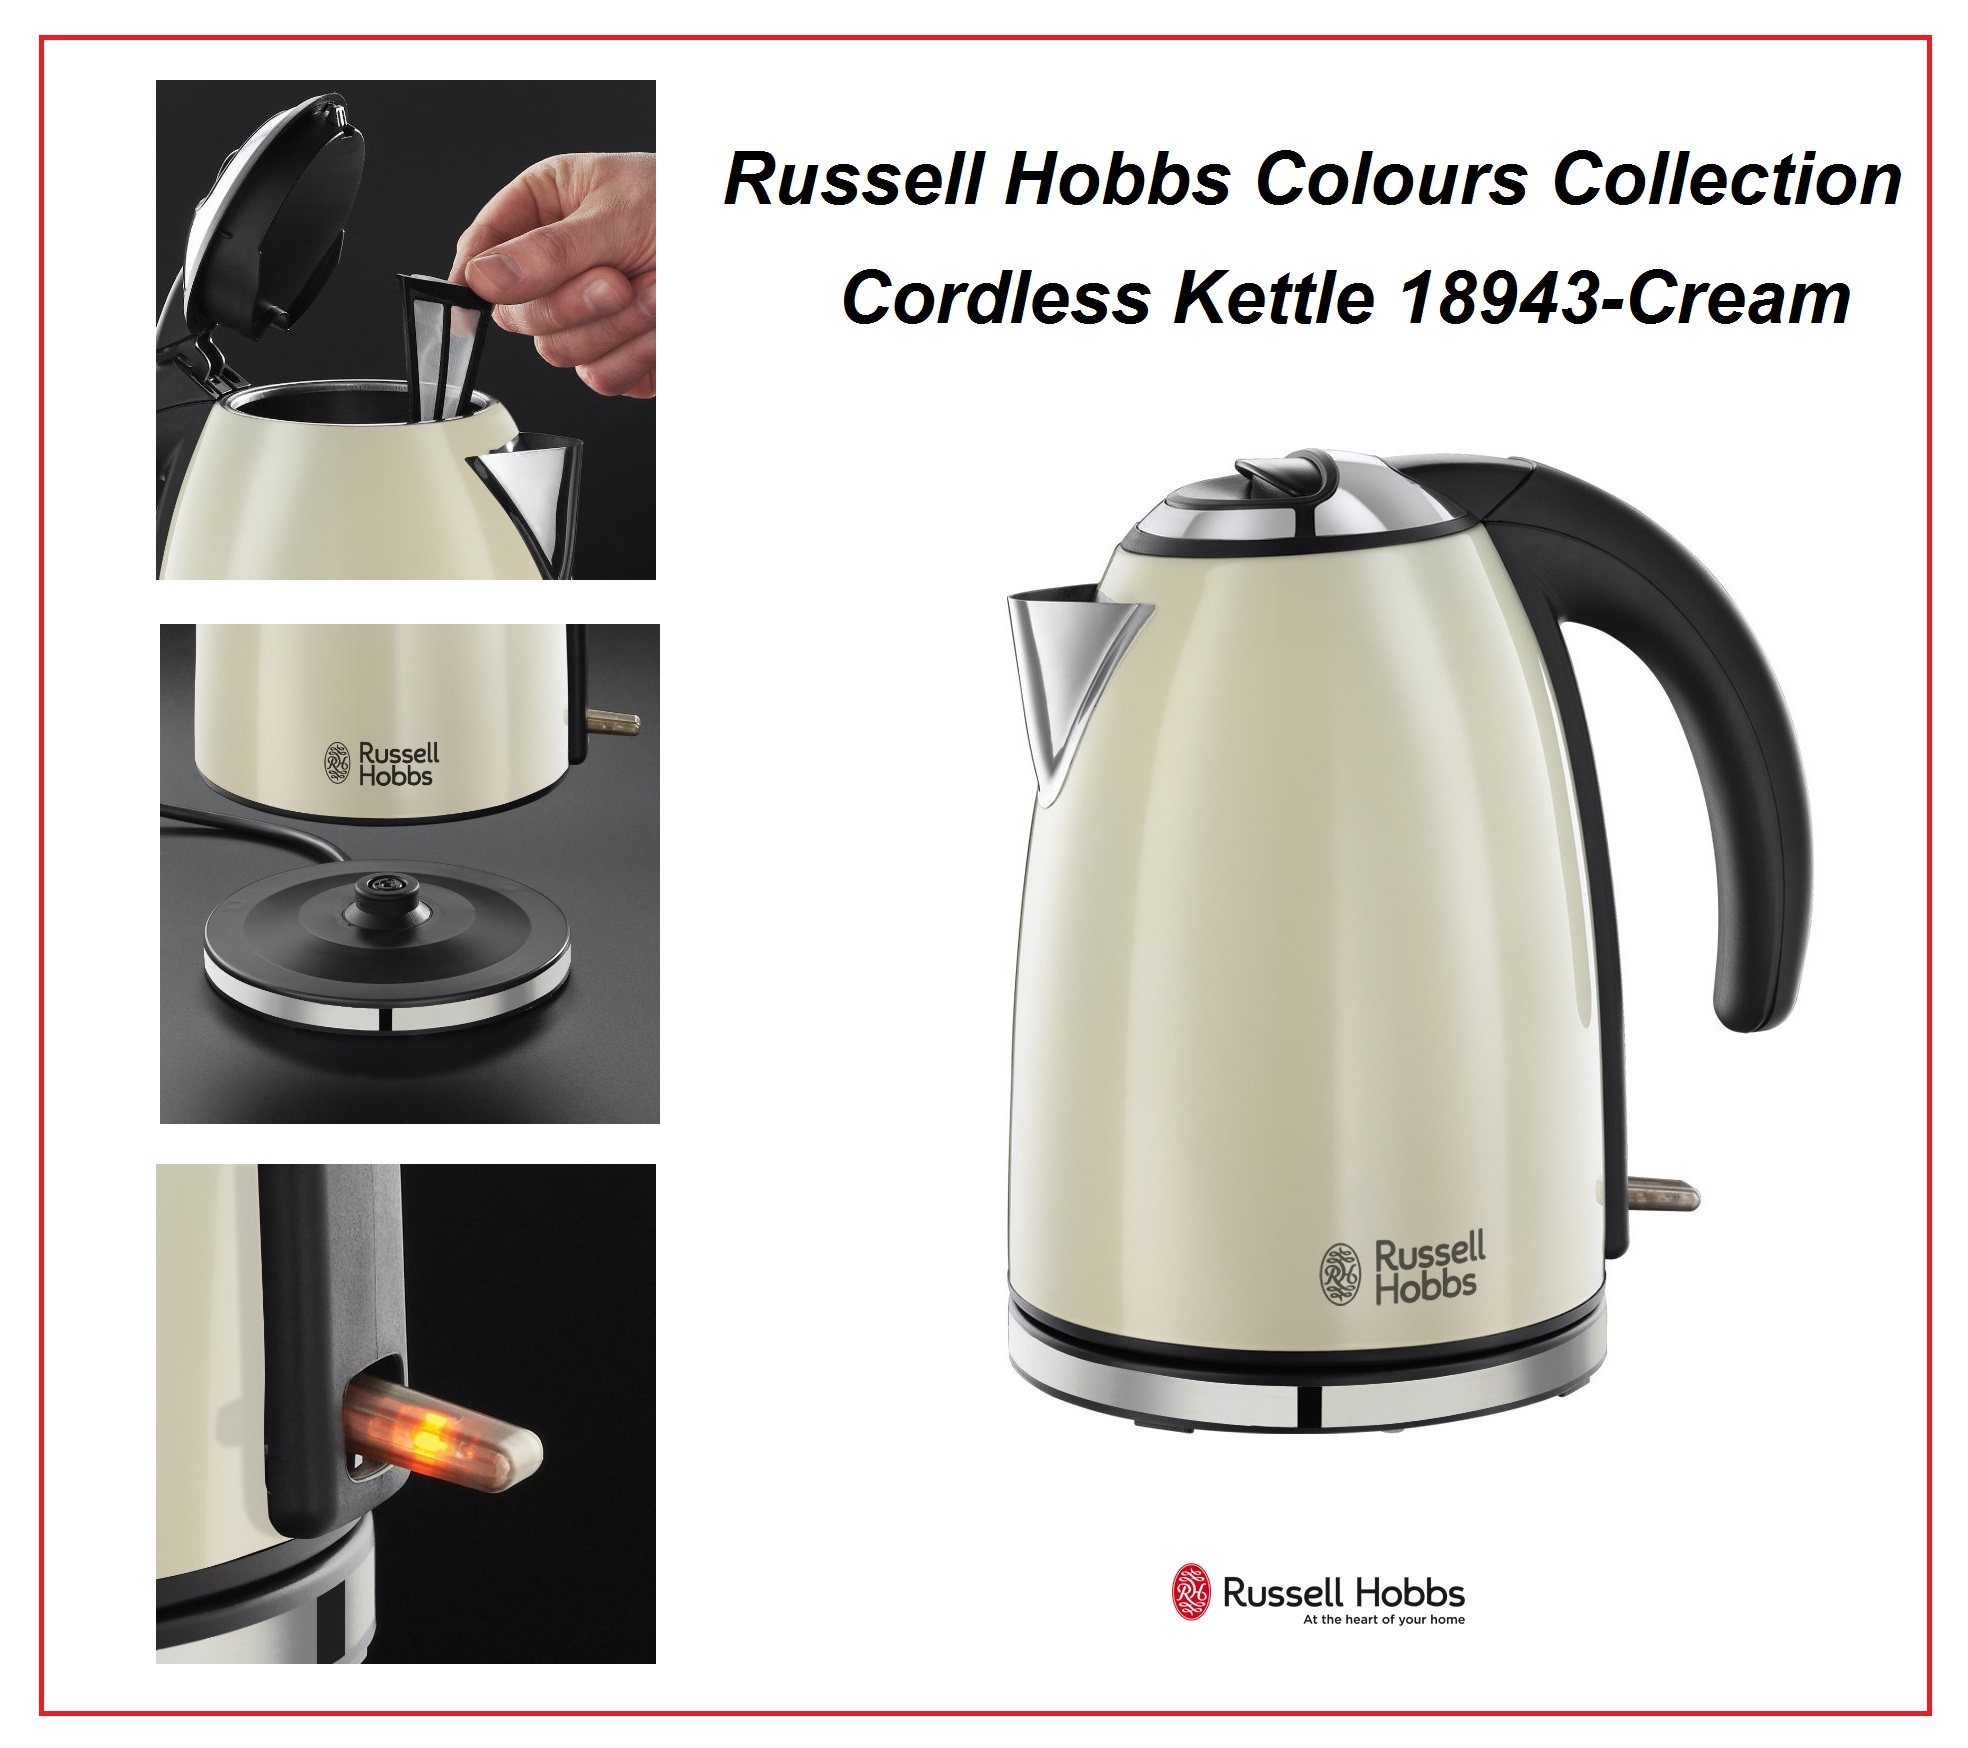 russell hobbs colours collection 18943 electric cordless. Black Bedroom Furniture Sets. Home Design Ideas